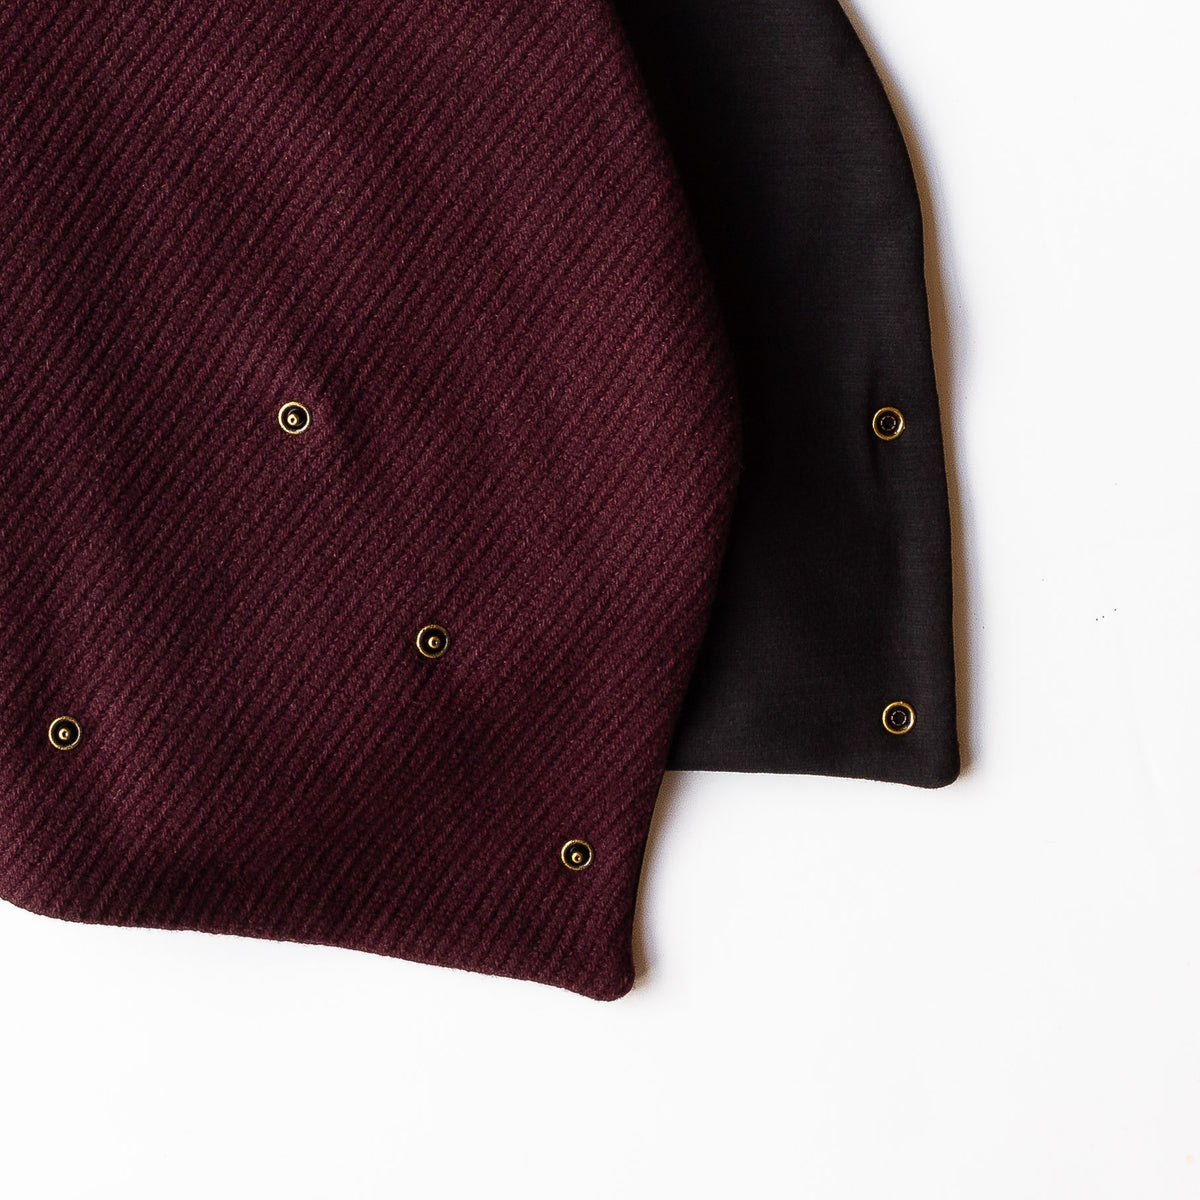 Detail - Dandurand Knitted Cotton Scarf - Burgundy - Sold by Chic & Basta